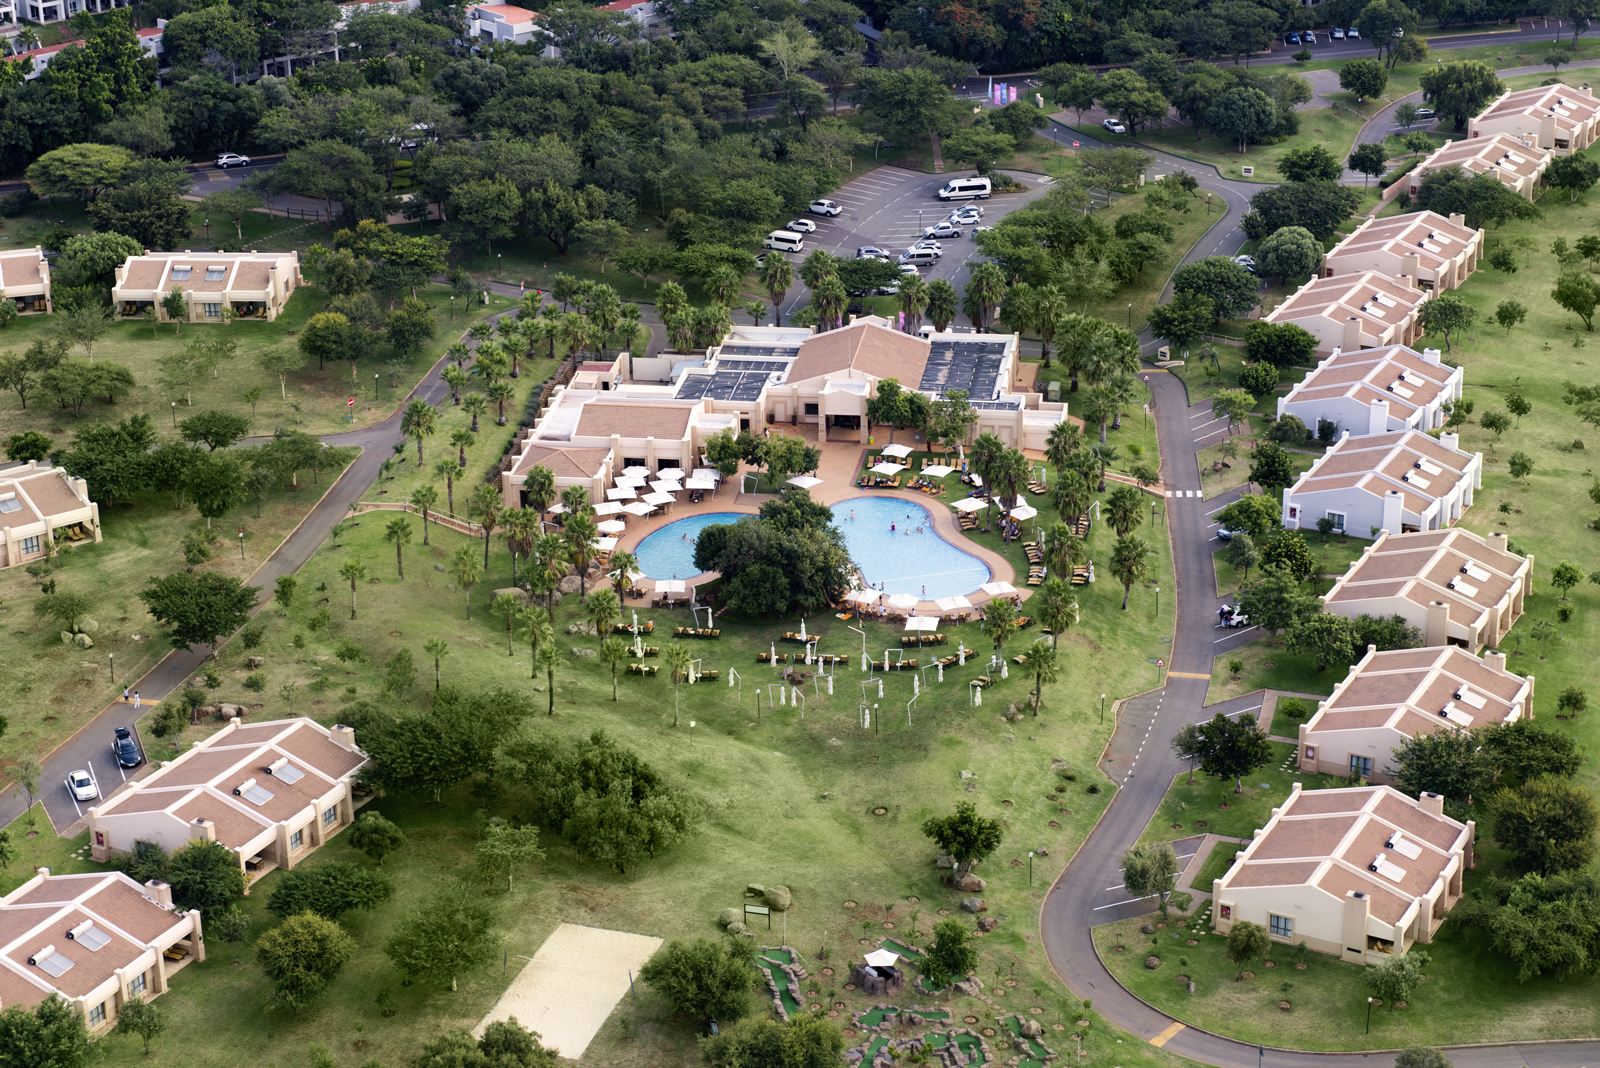 Sun City Sun Vacation Club Aerial